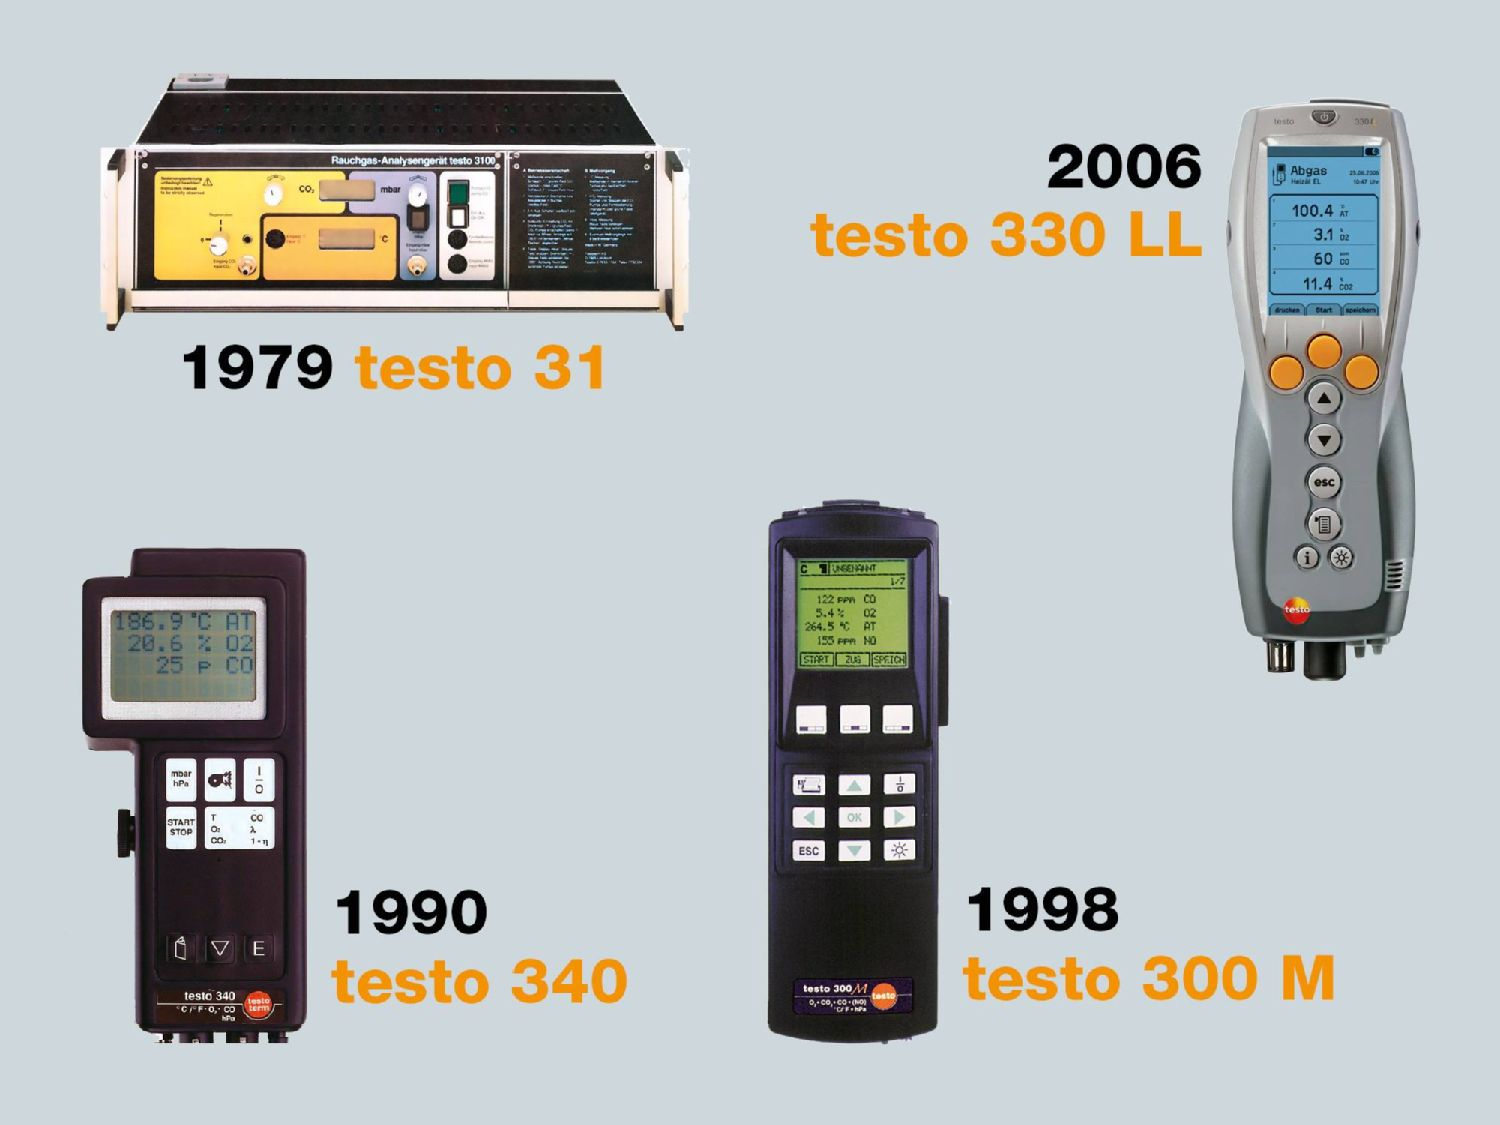 testo flue gas analyzers 1979-2006